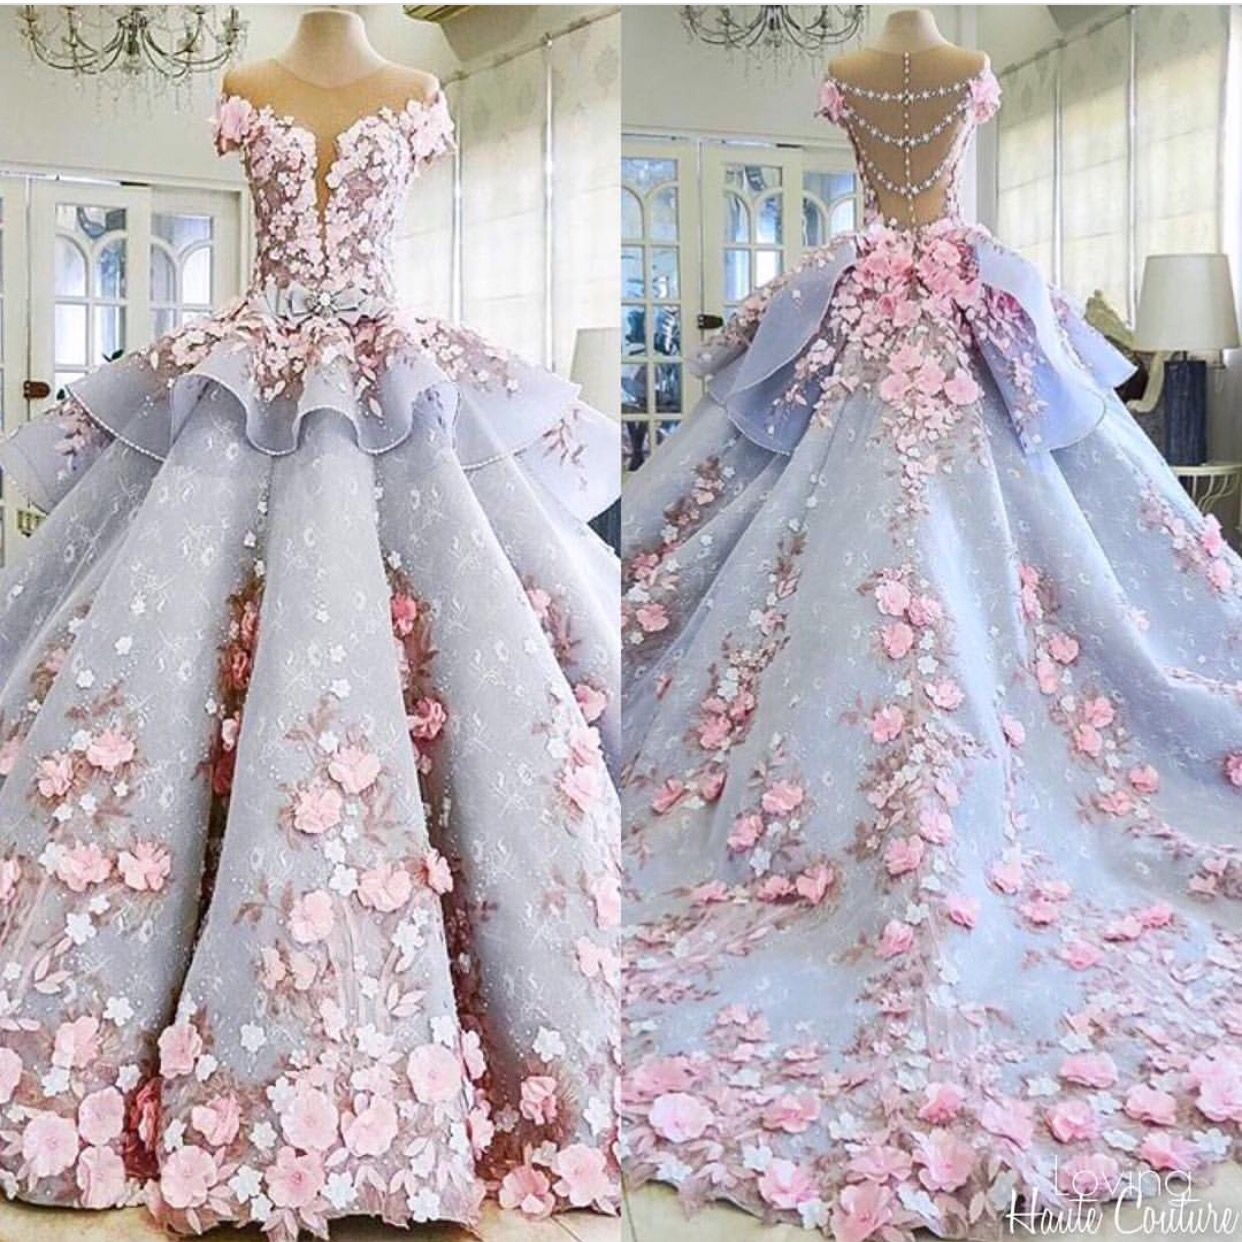 Most Beautiful Ball Gown Wedding Dresses: The Most Beautiful Dress Fit For A True Princess! (With